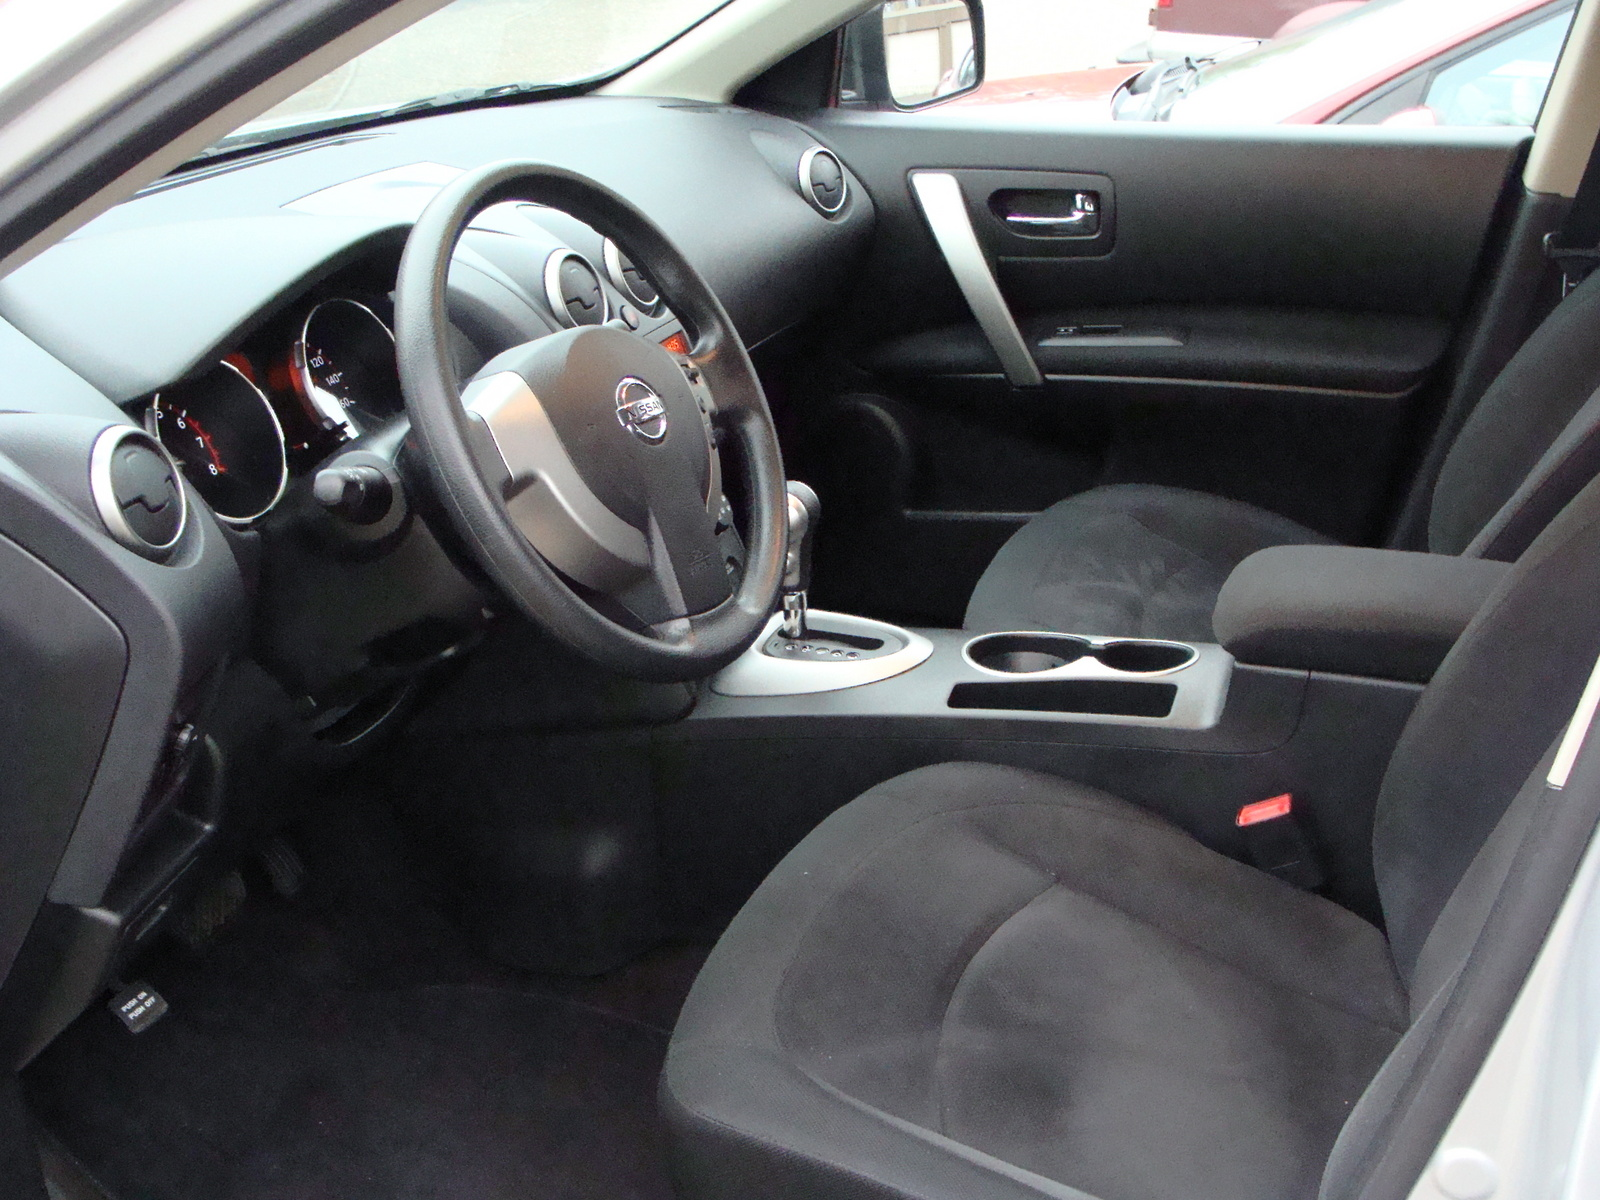 2009 Nissan Rogue Pictures Cargurus